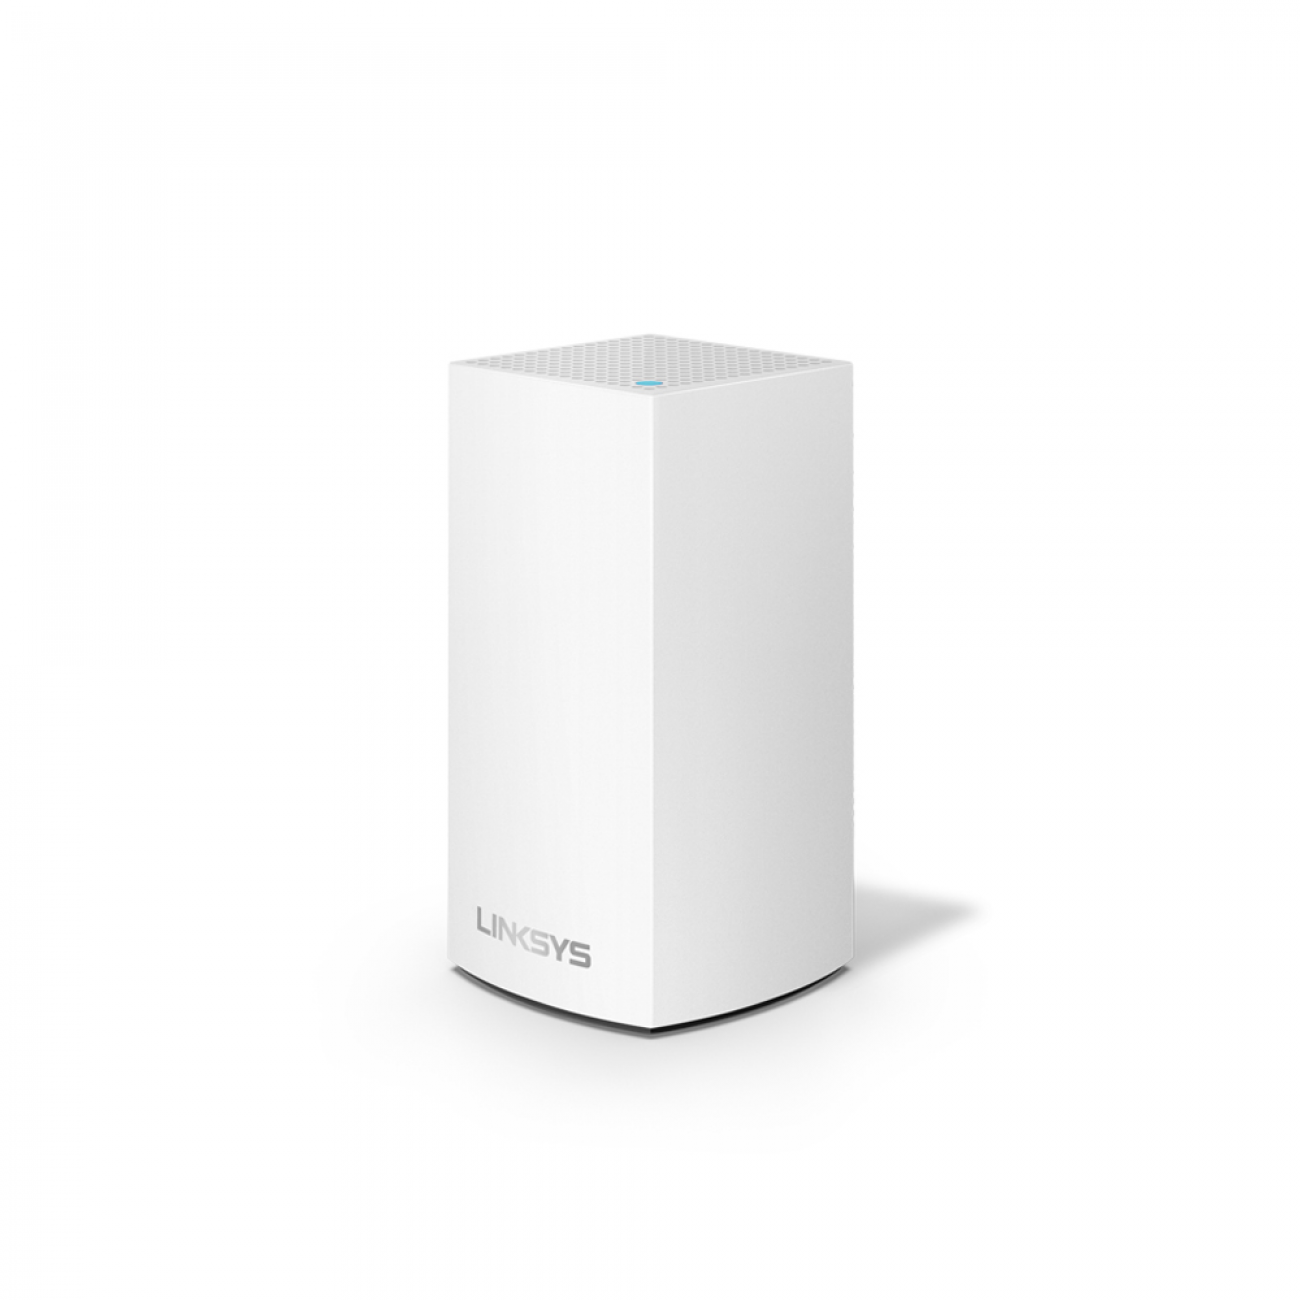 LINKSYS VELOP HW0103-AH DUAL-BAND AC3900 INTELLIGENT MESH WIFI SYSTEM WIFI 5 MU-MIMO SYSTEM 3-PK